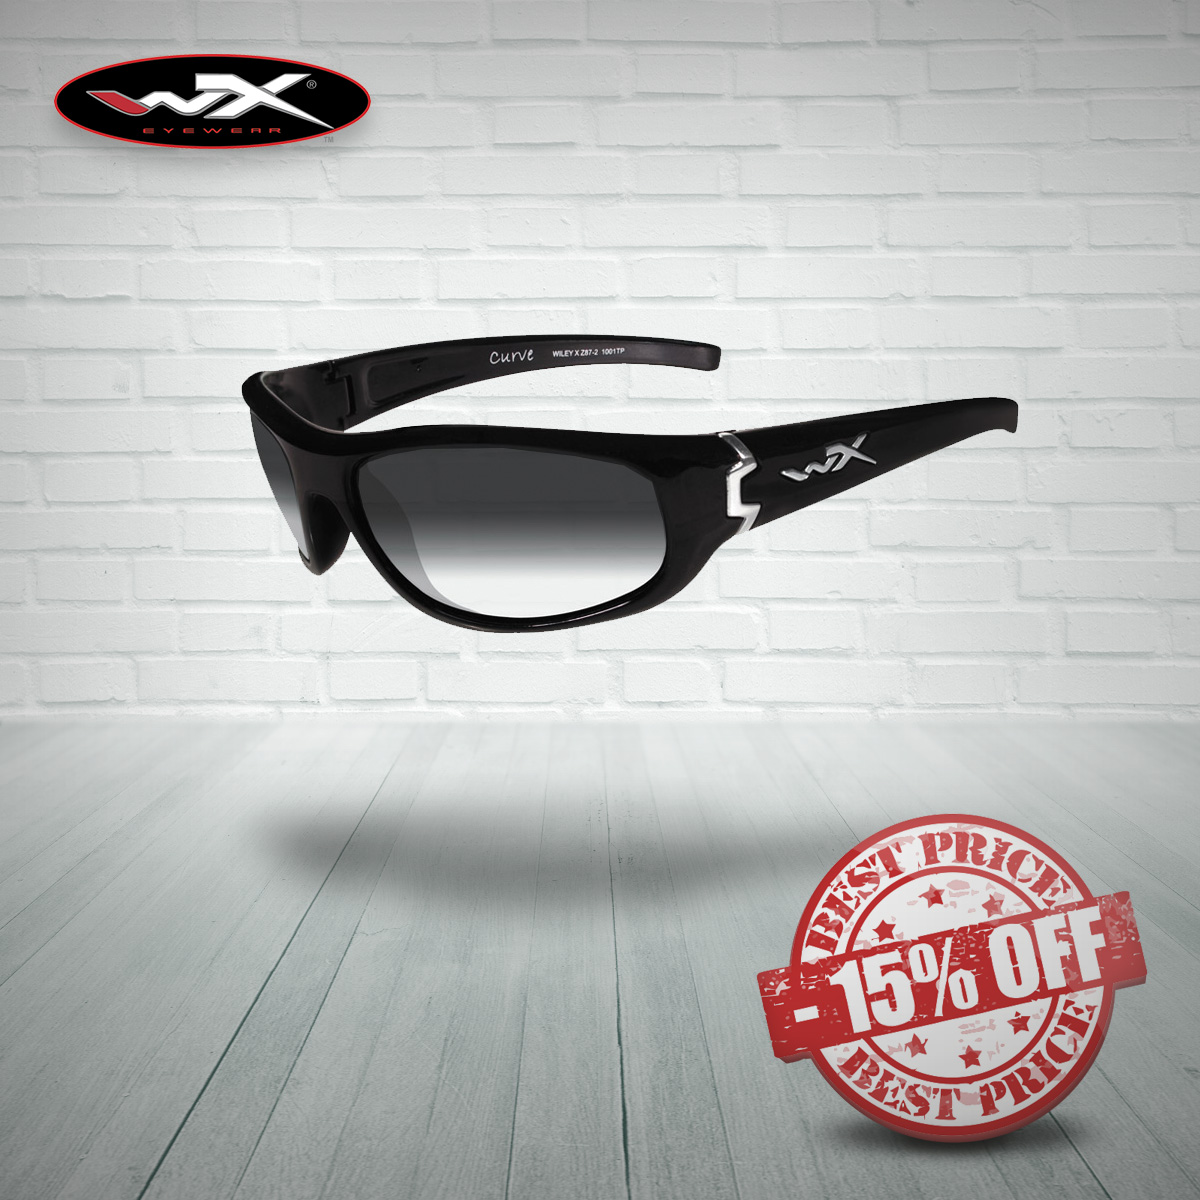 !-sales-1200x1200-wiley-x-curve-glasses